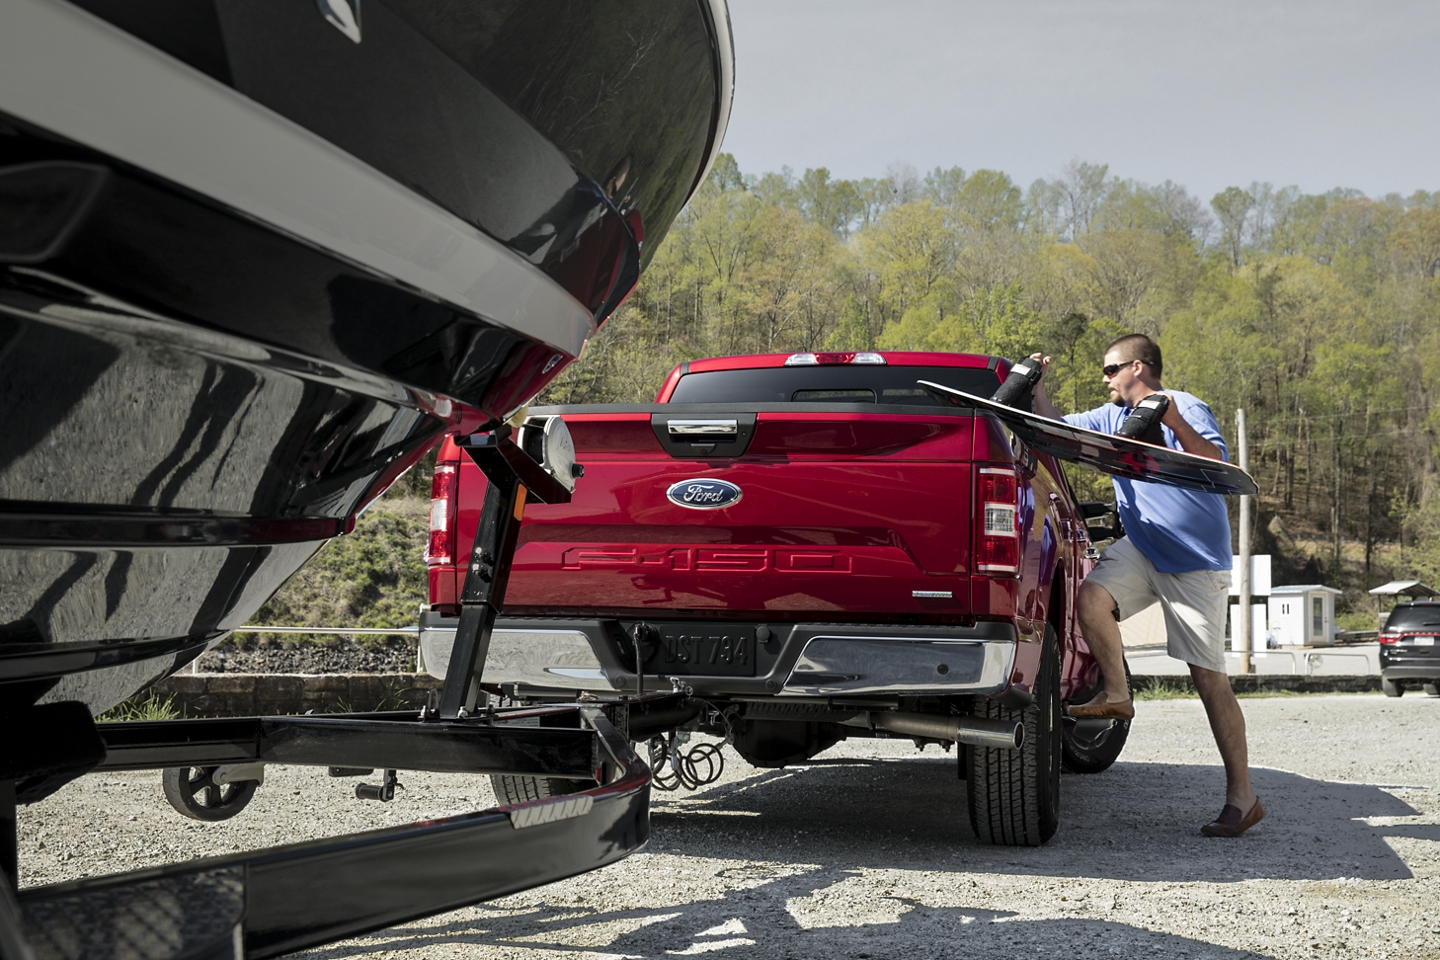 2020 Ford F-150 hitched to a boat